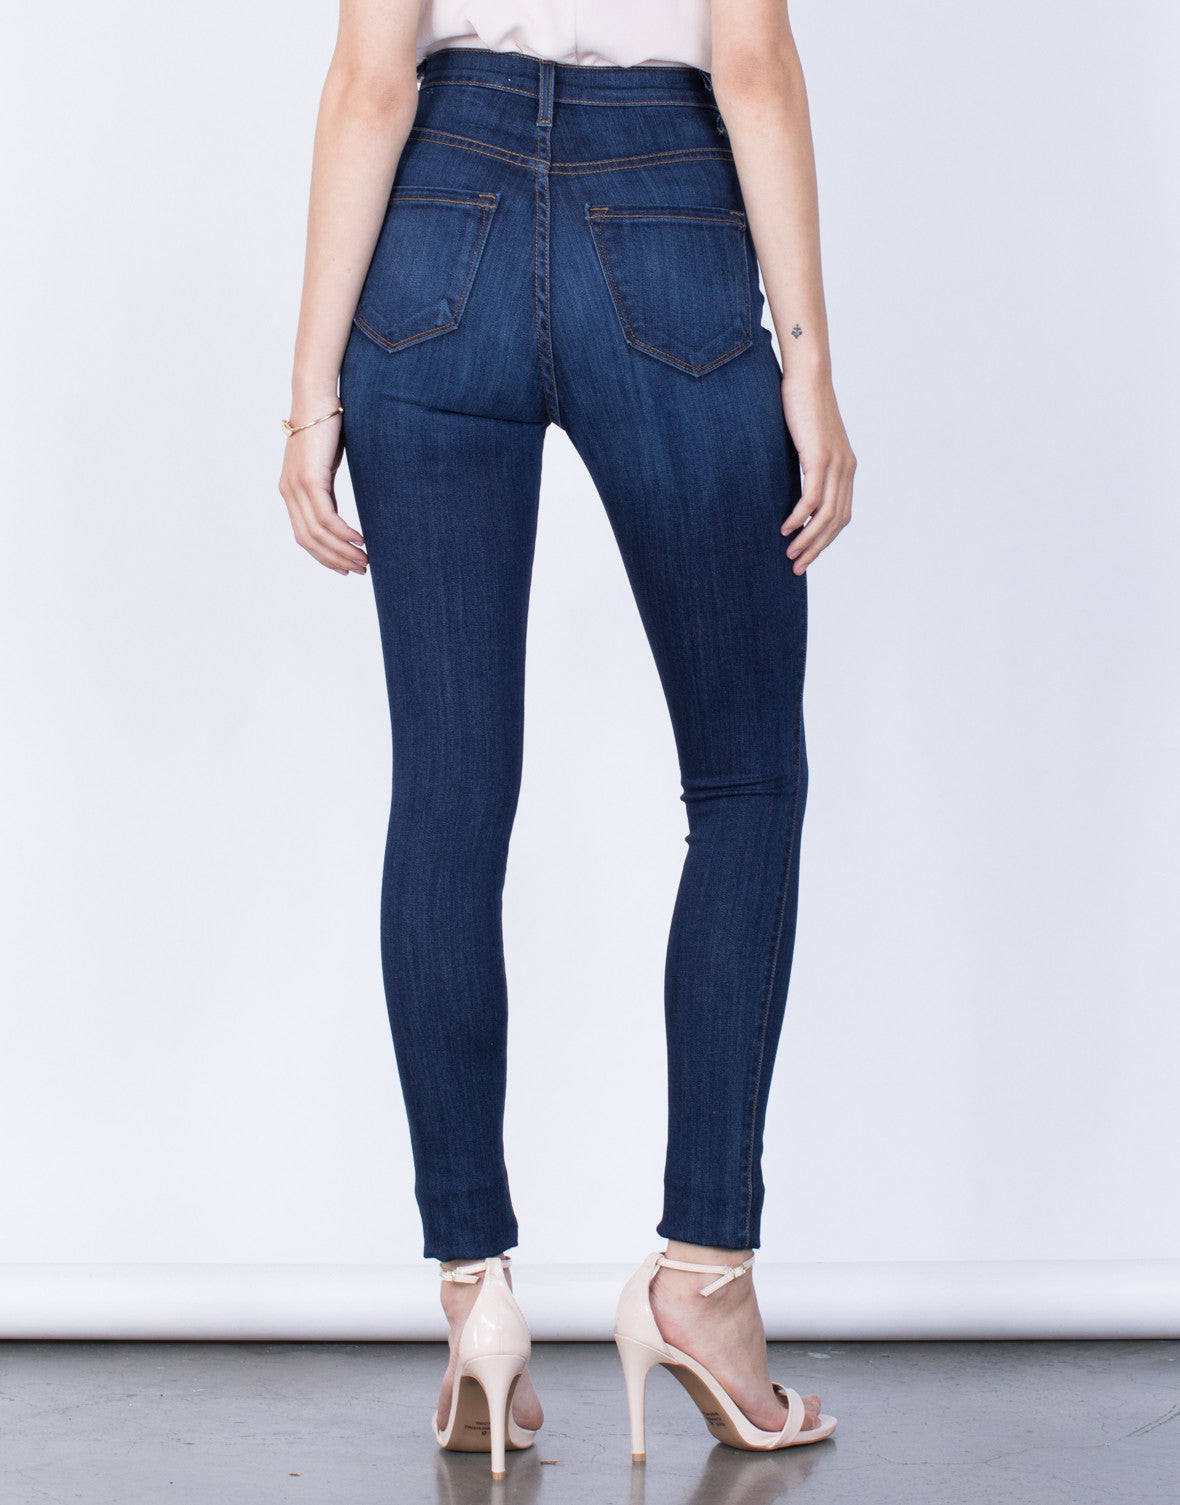 Back View of Sky High Jeans